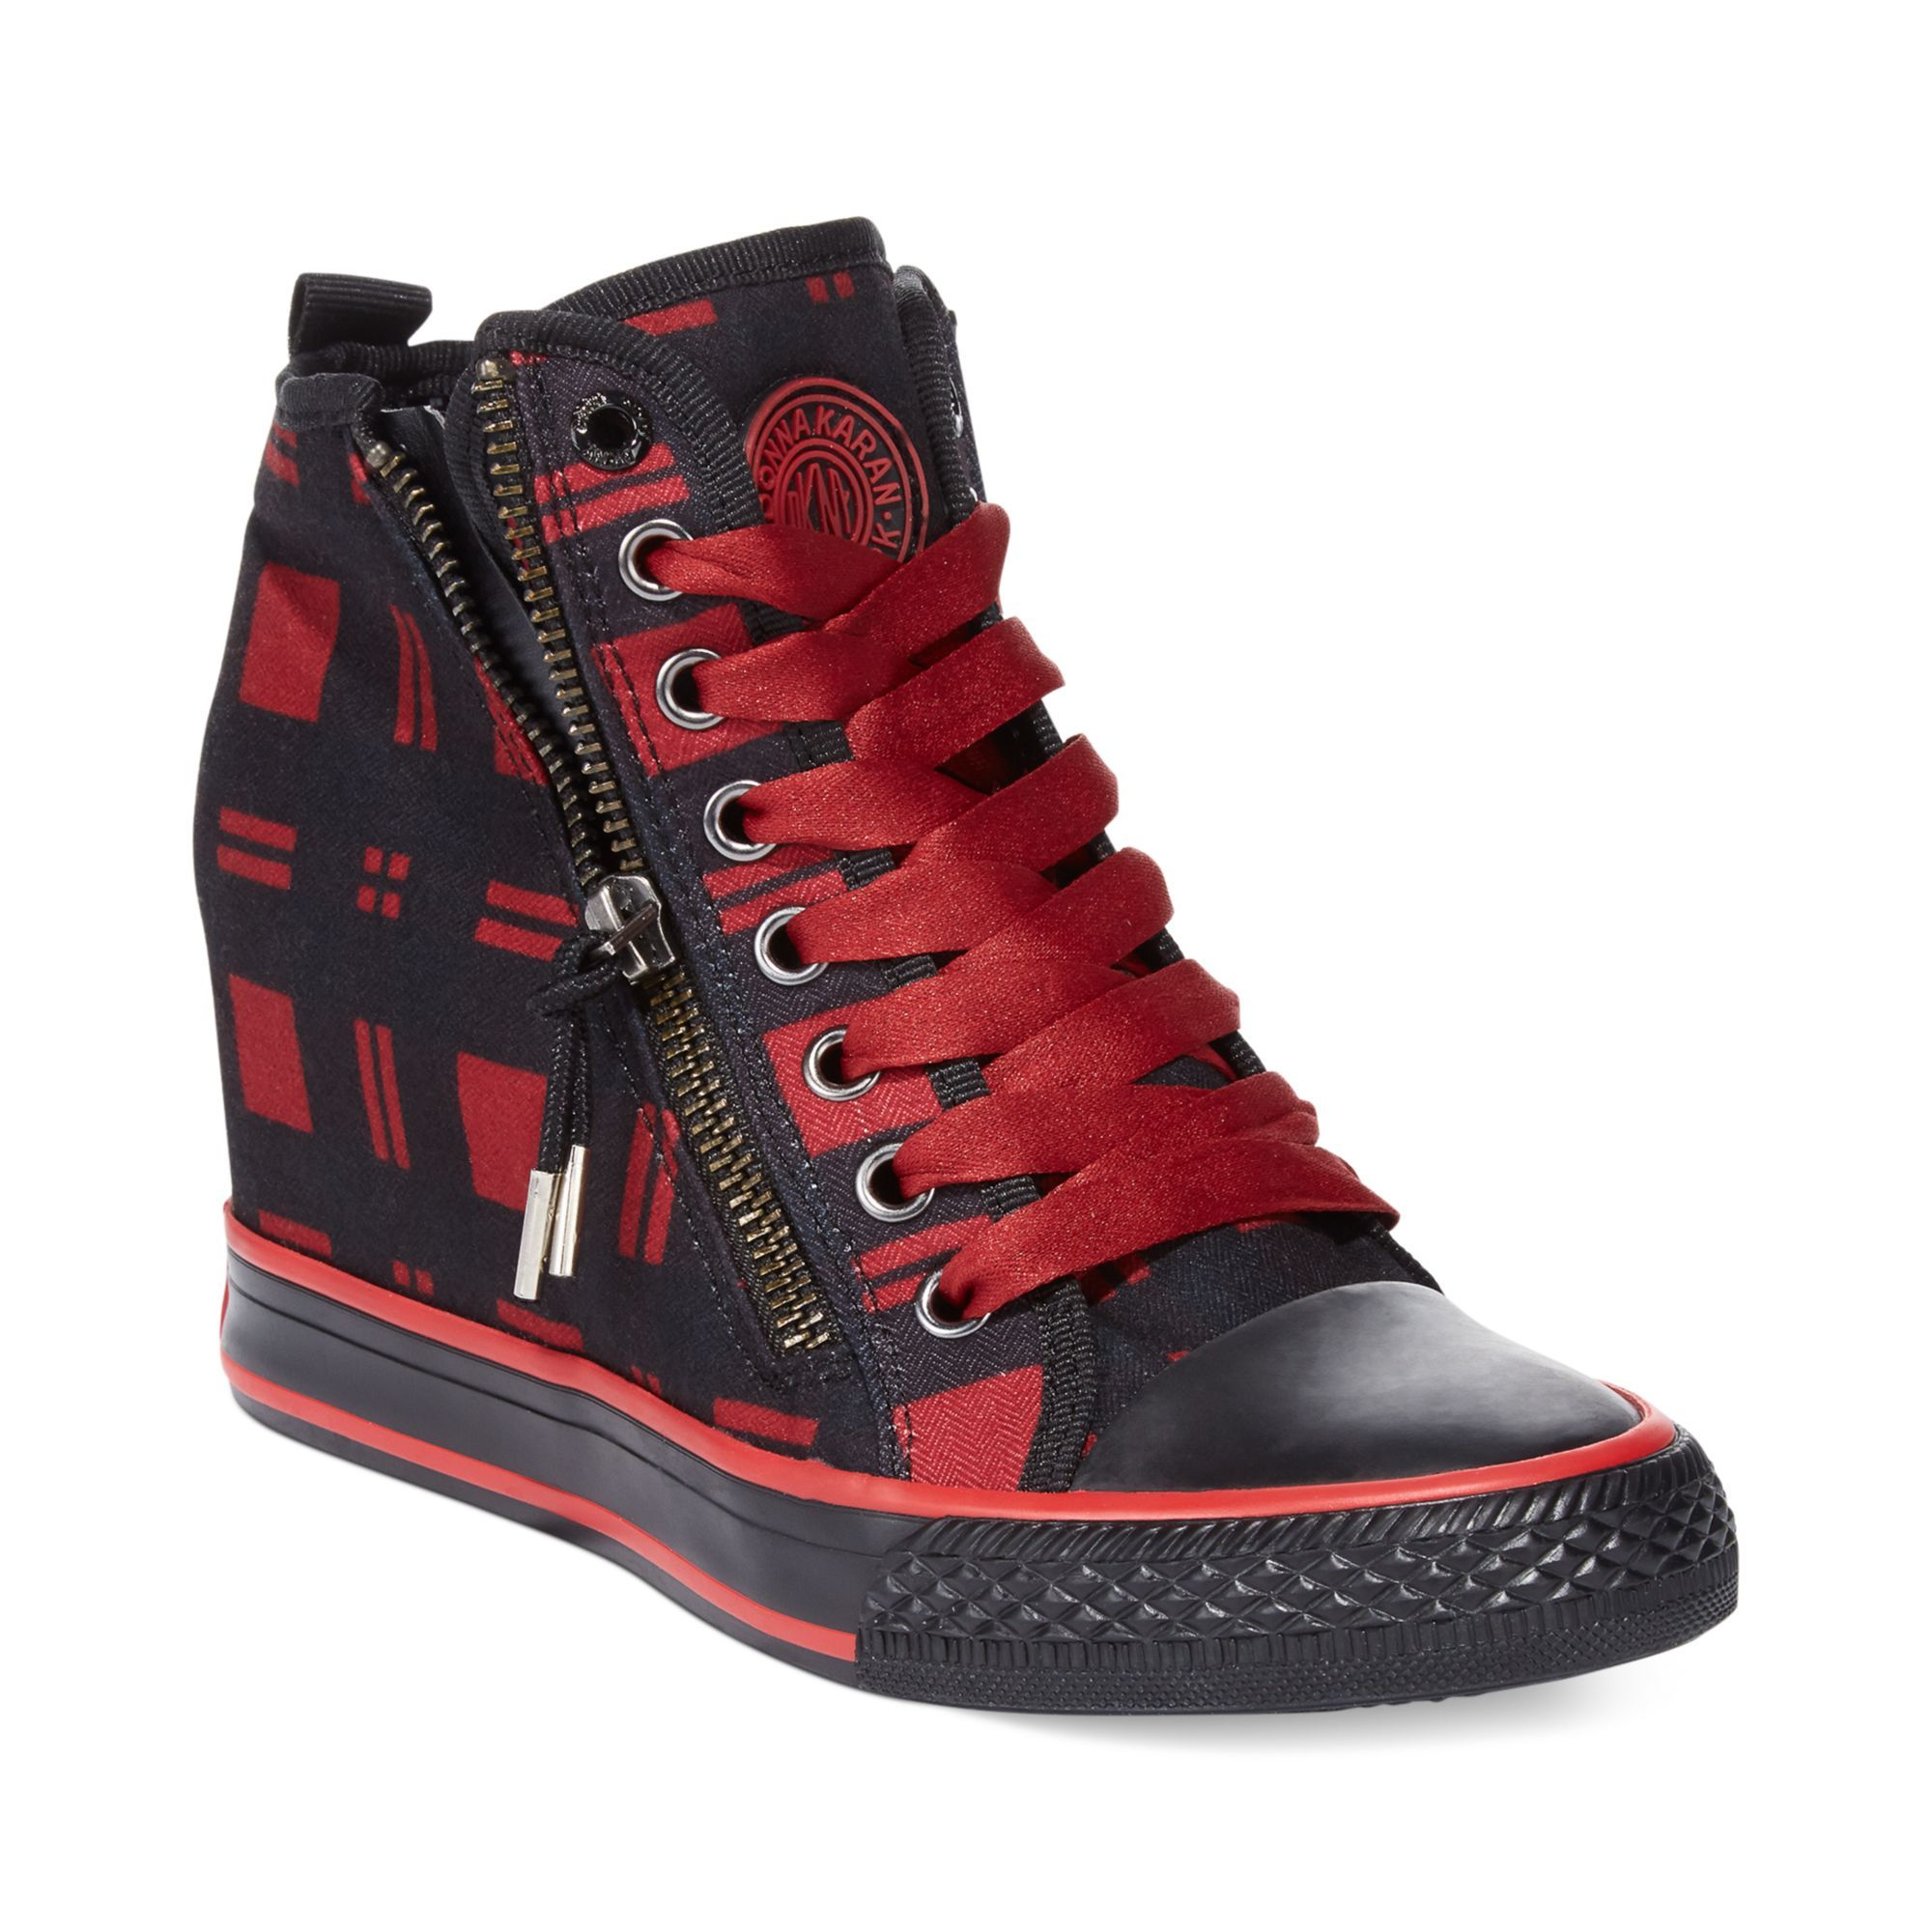 d0e4130330cd Dkny Carmila Wedge Sneakers in Black (Red Plaid)